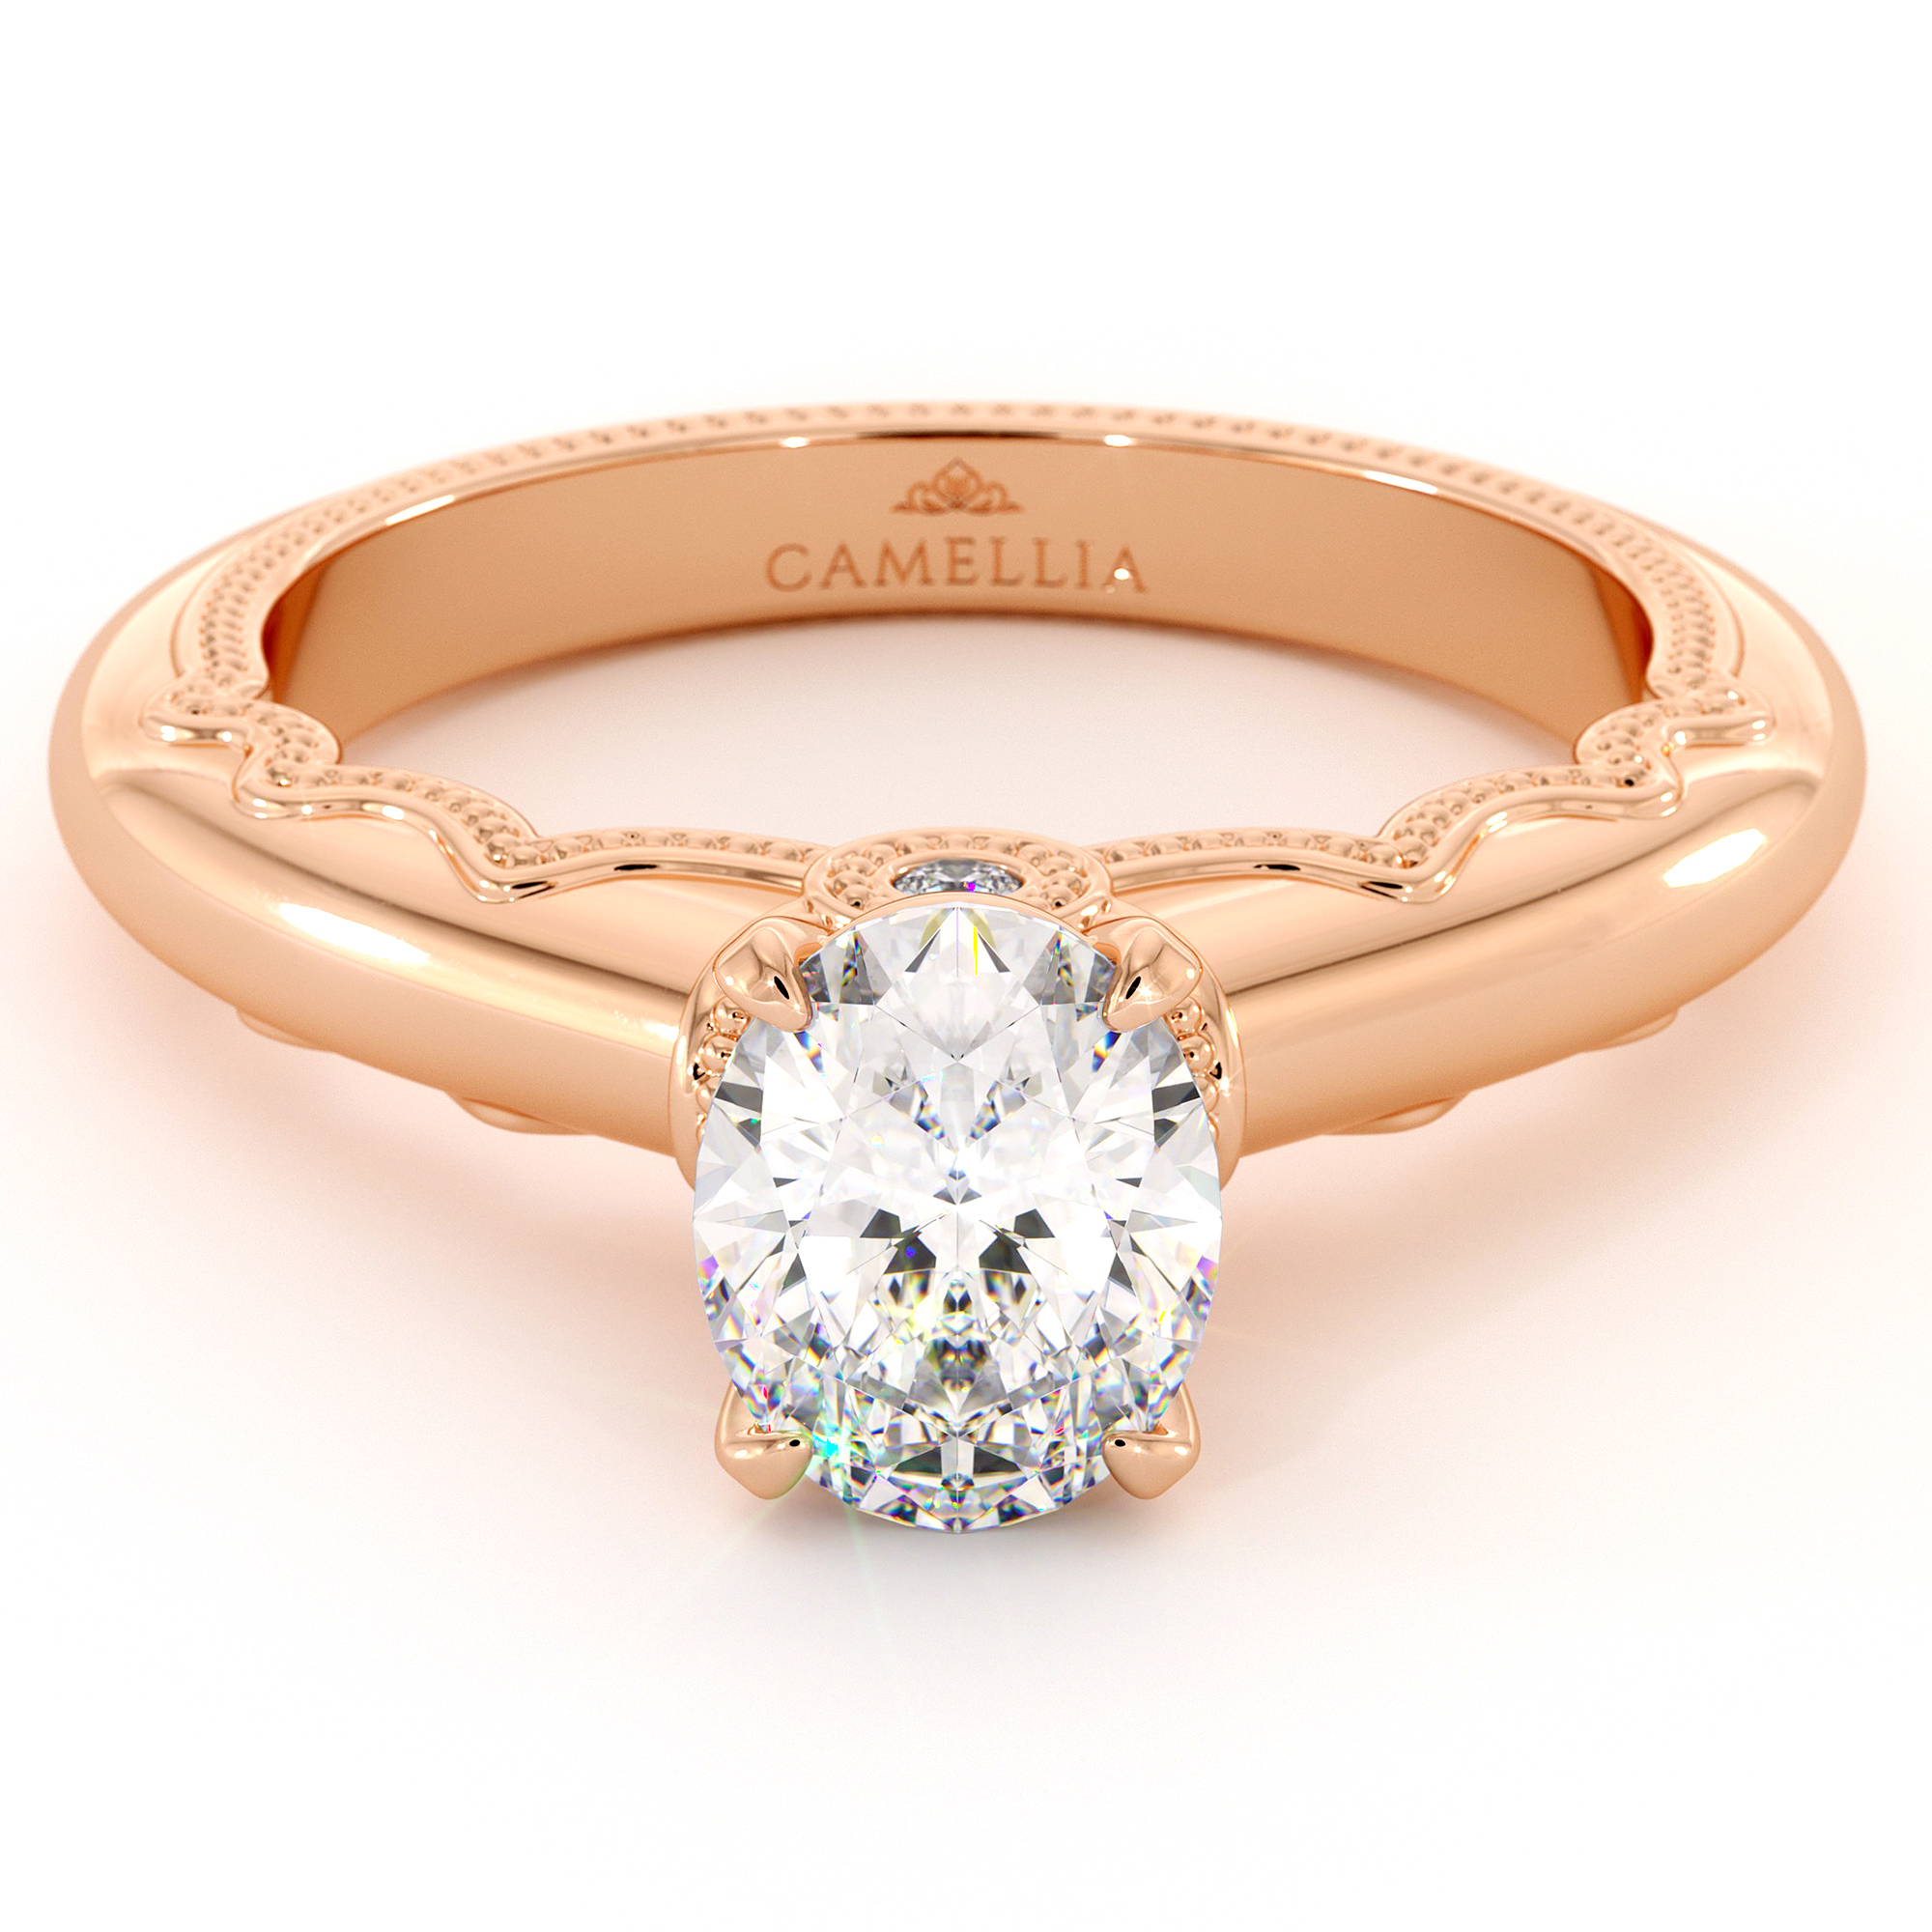 Oval Cut Moissanite Engagement Ring Victorian Estate Rose Gold Ring Proposal Diamond Altentative Ring